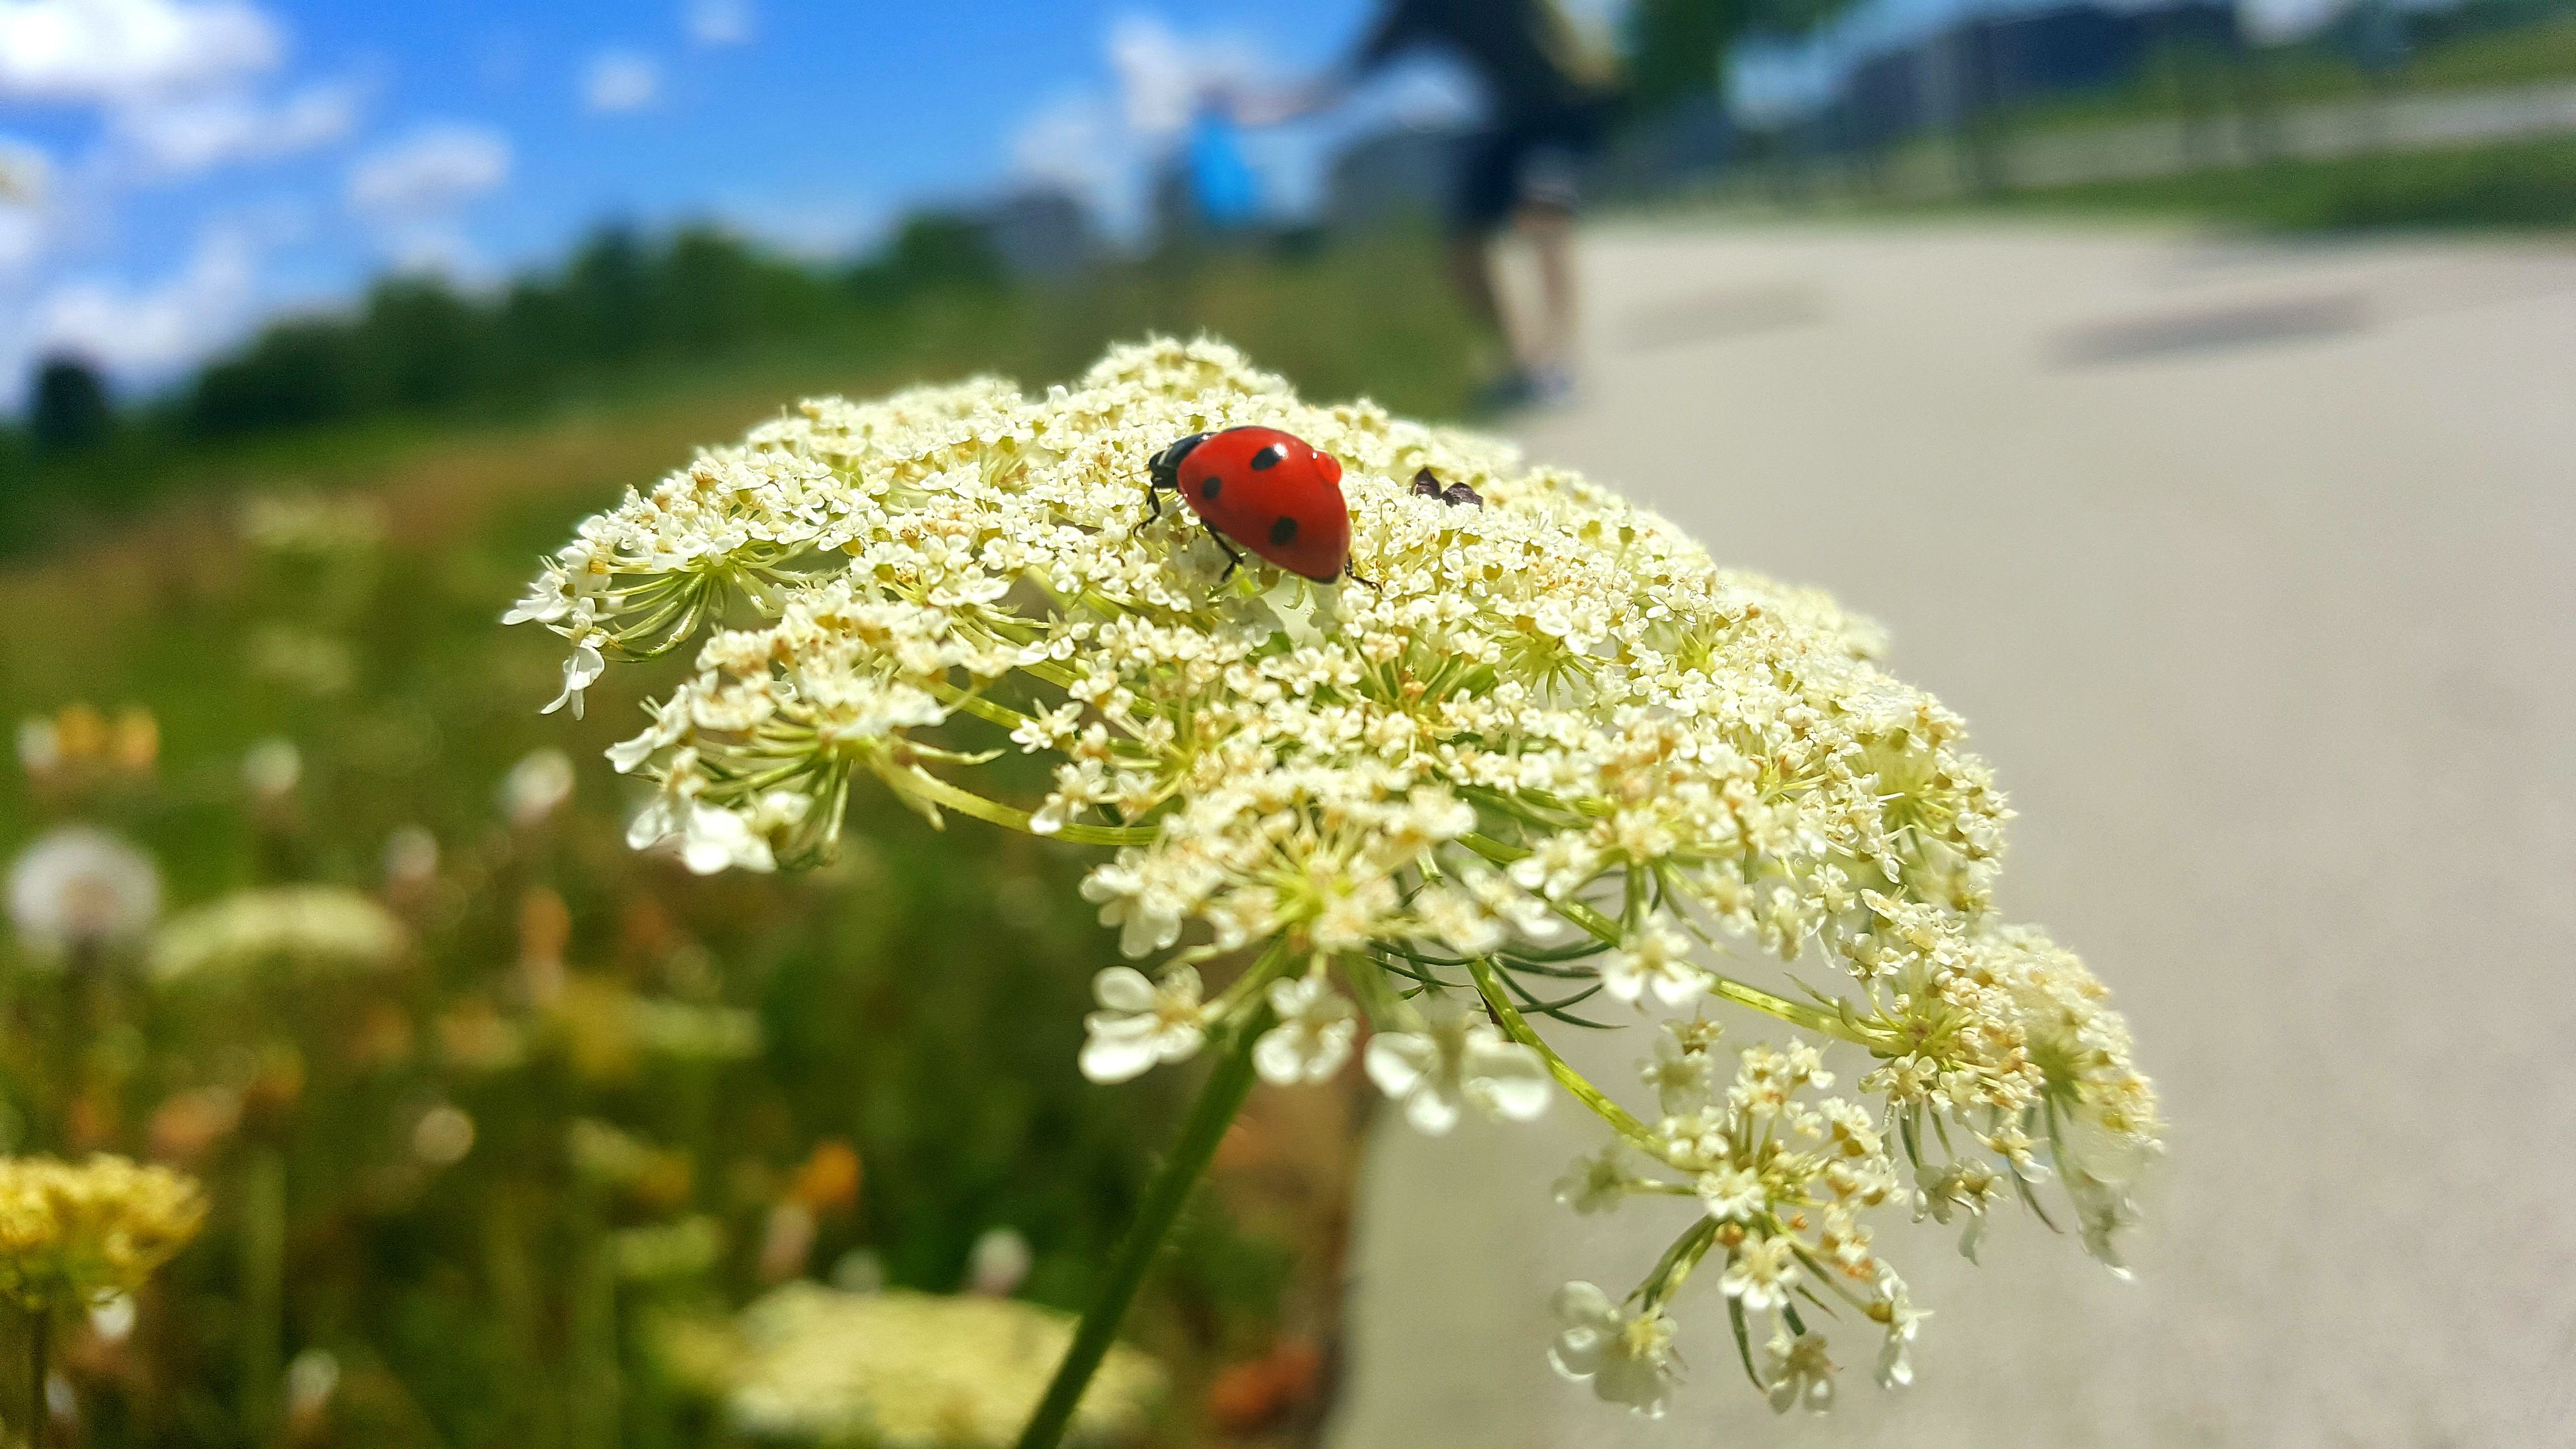 one animal, insect, flower, animal themes, animals in the wild, nature, ladybug, focus on foreground, day, fragility, close-up, no people, tiny, beauty in nature, outdoors, plant, red, animal wildlife, growth, flower head, freshness